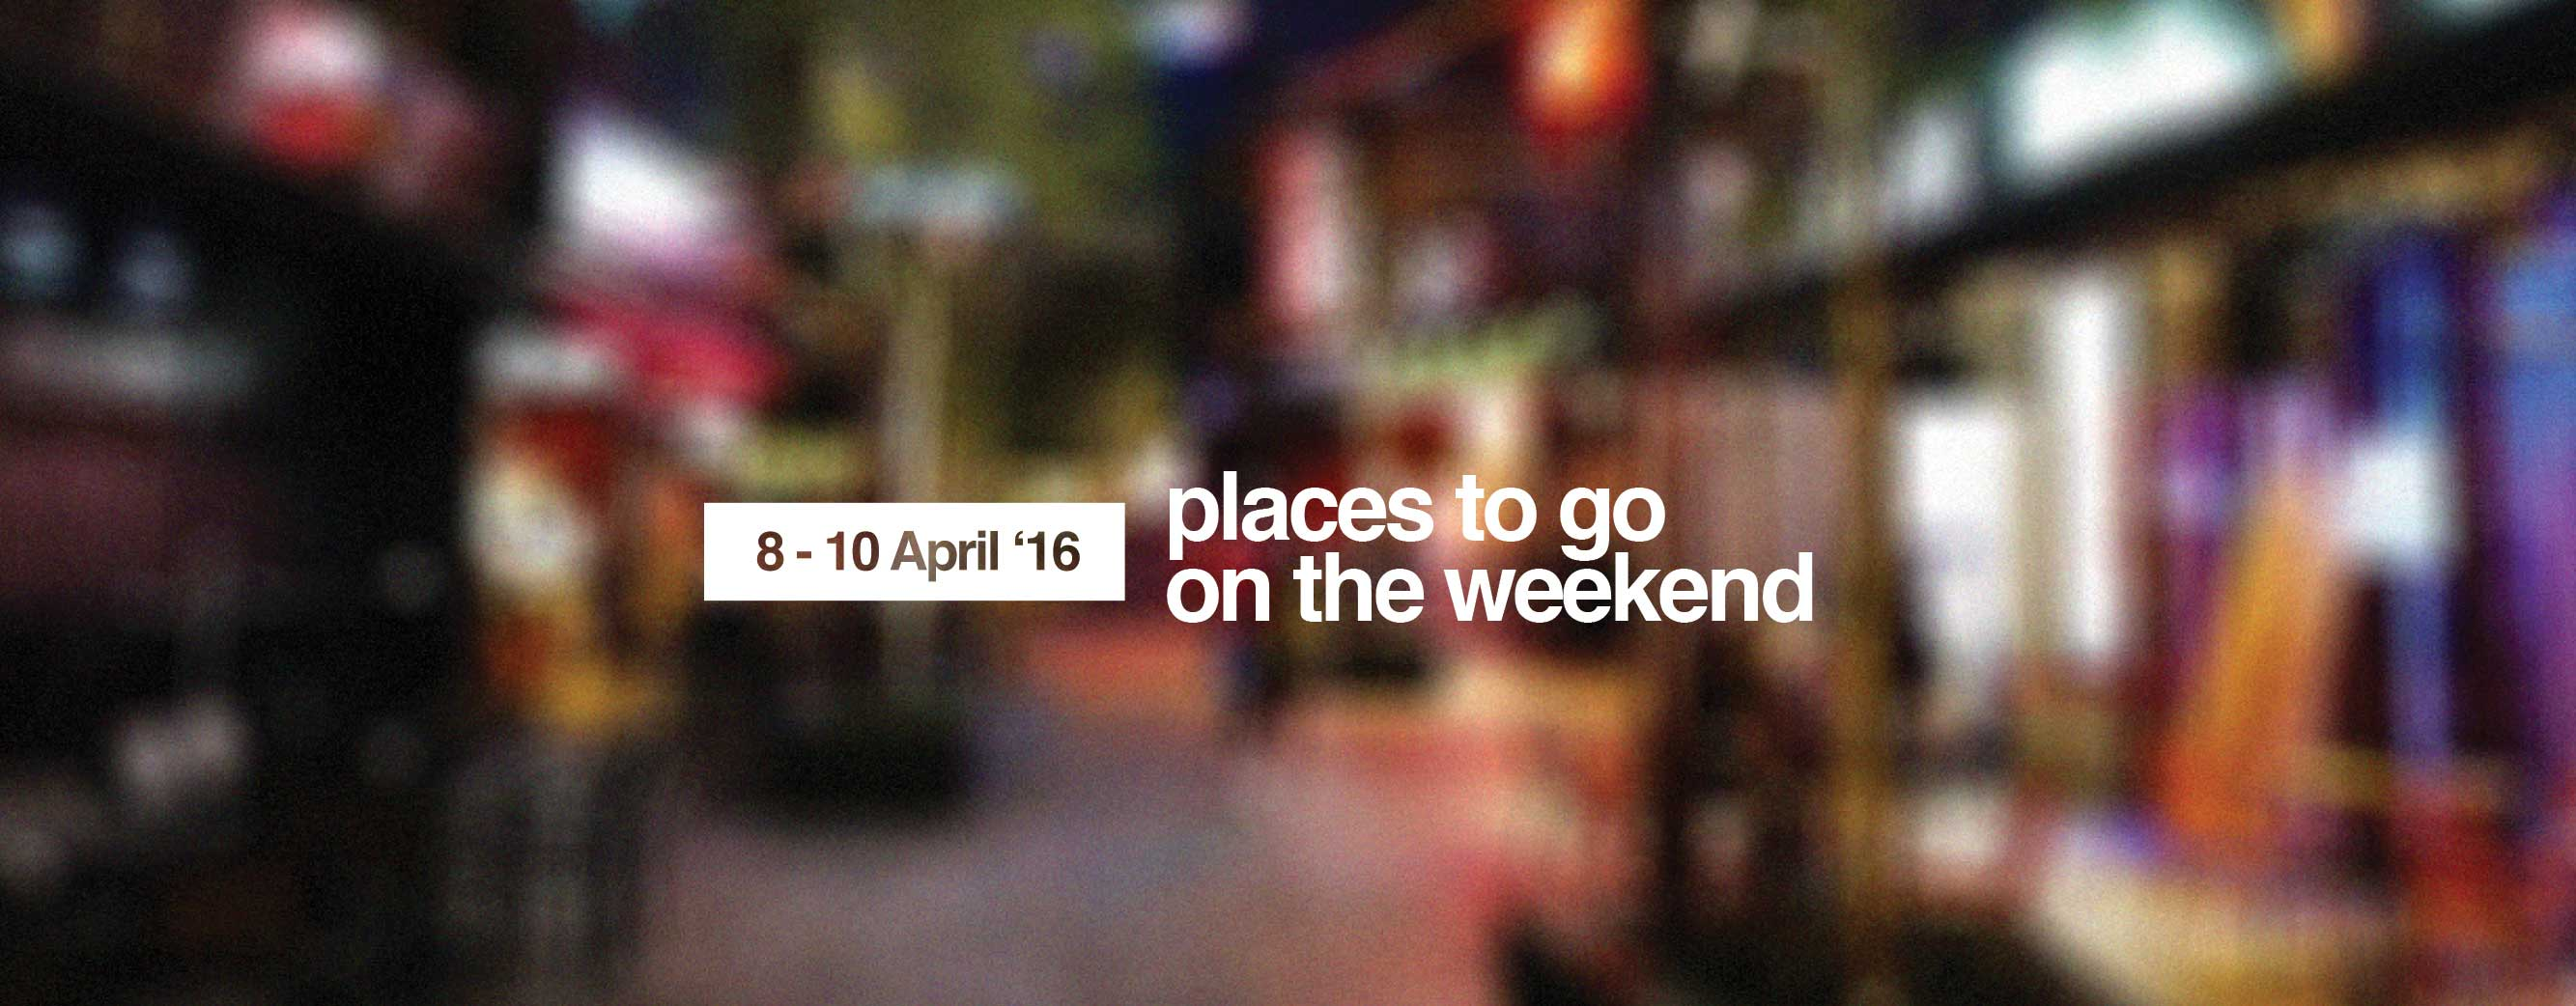 source: Places to Go